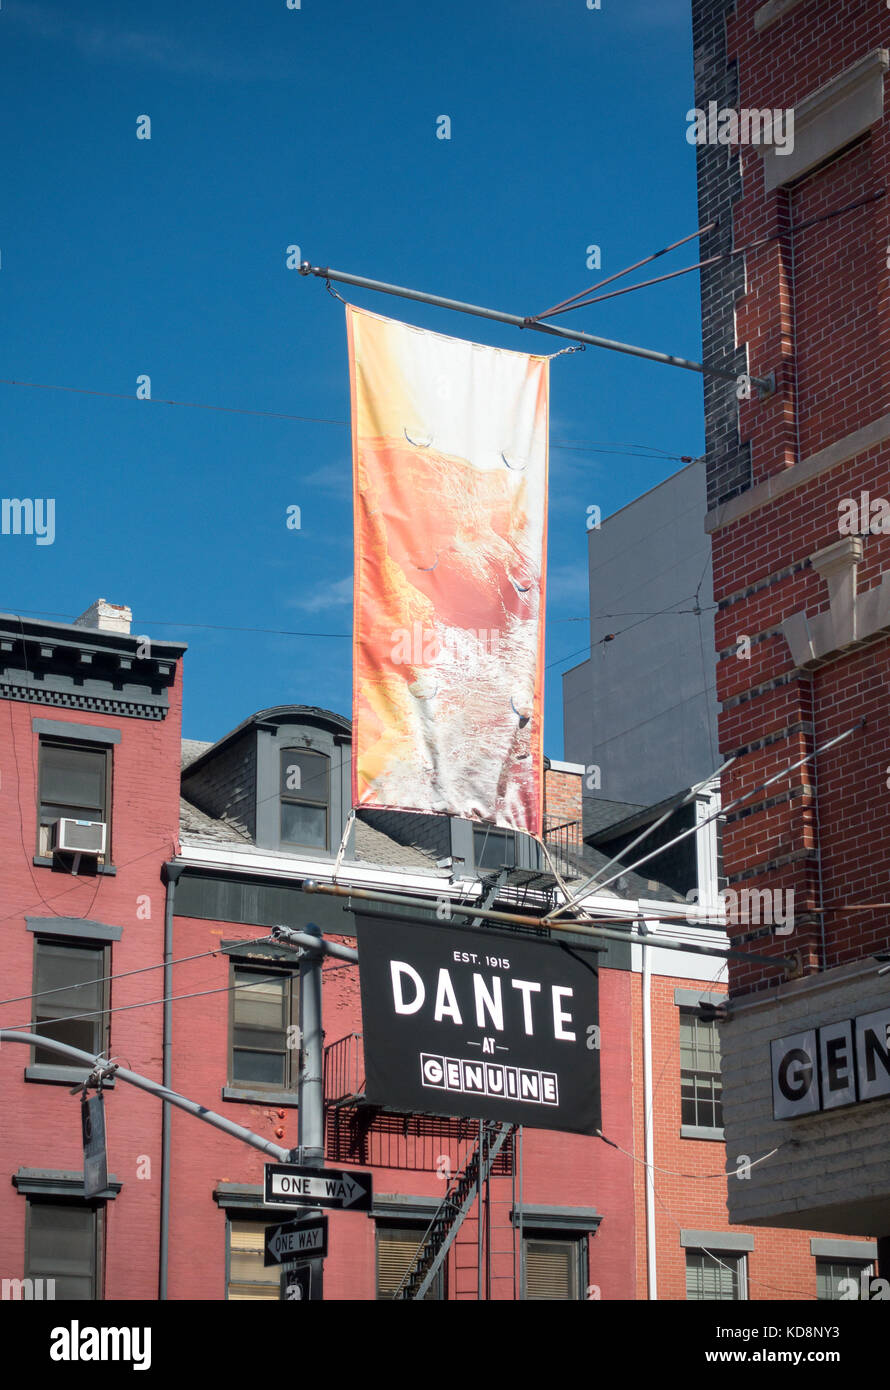 Dante at Genuine, a cocktail bar in Little Italy - Stock Image